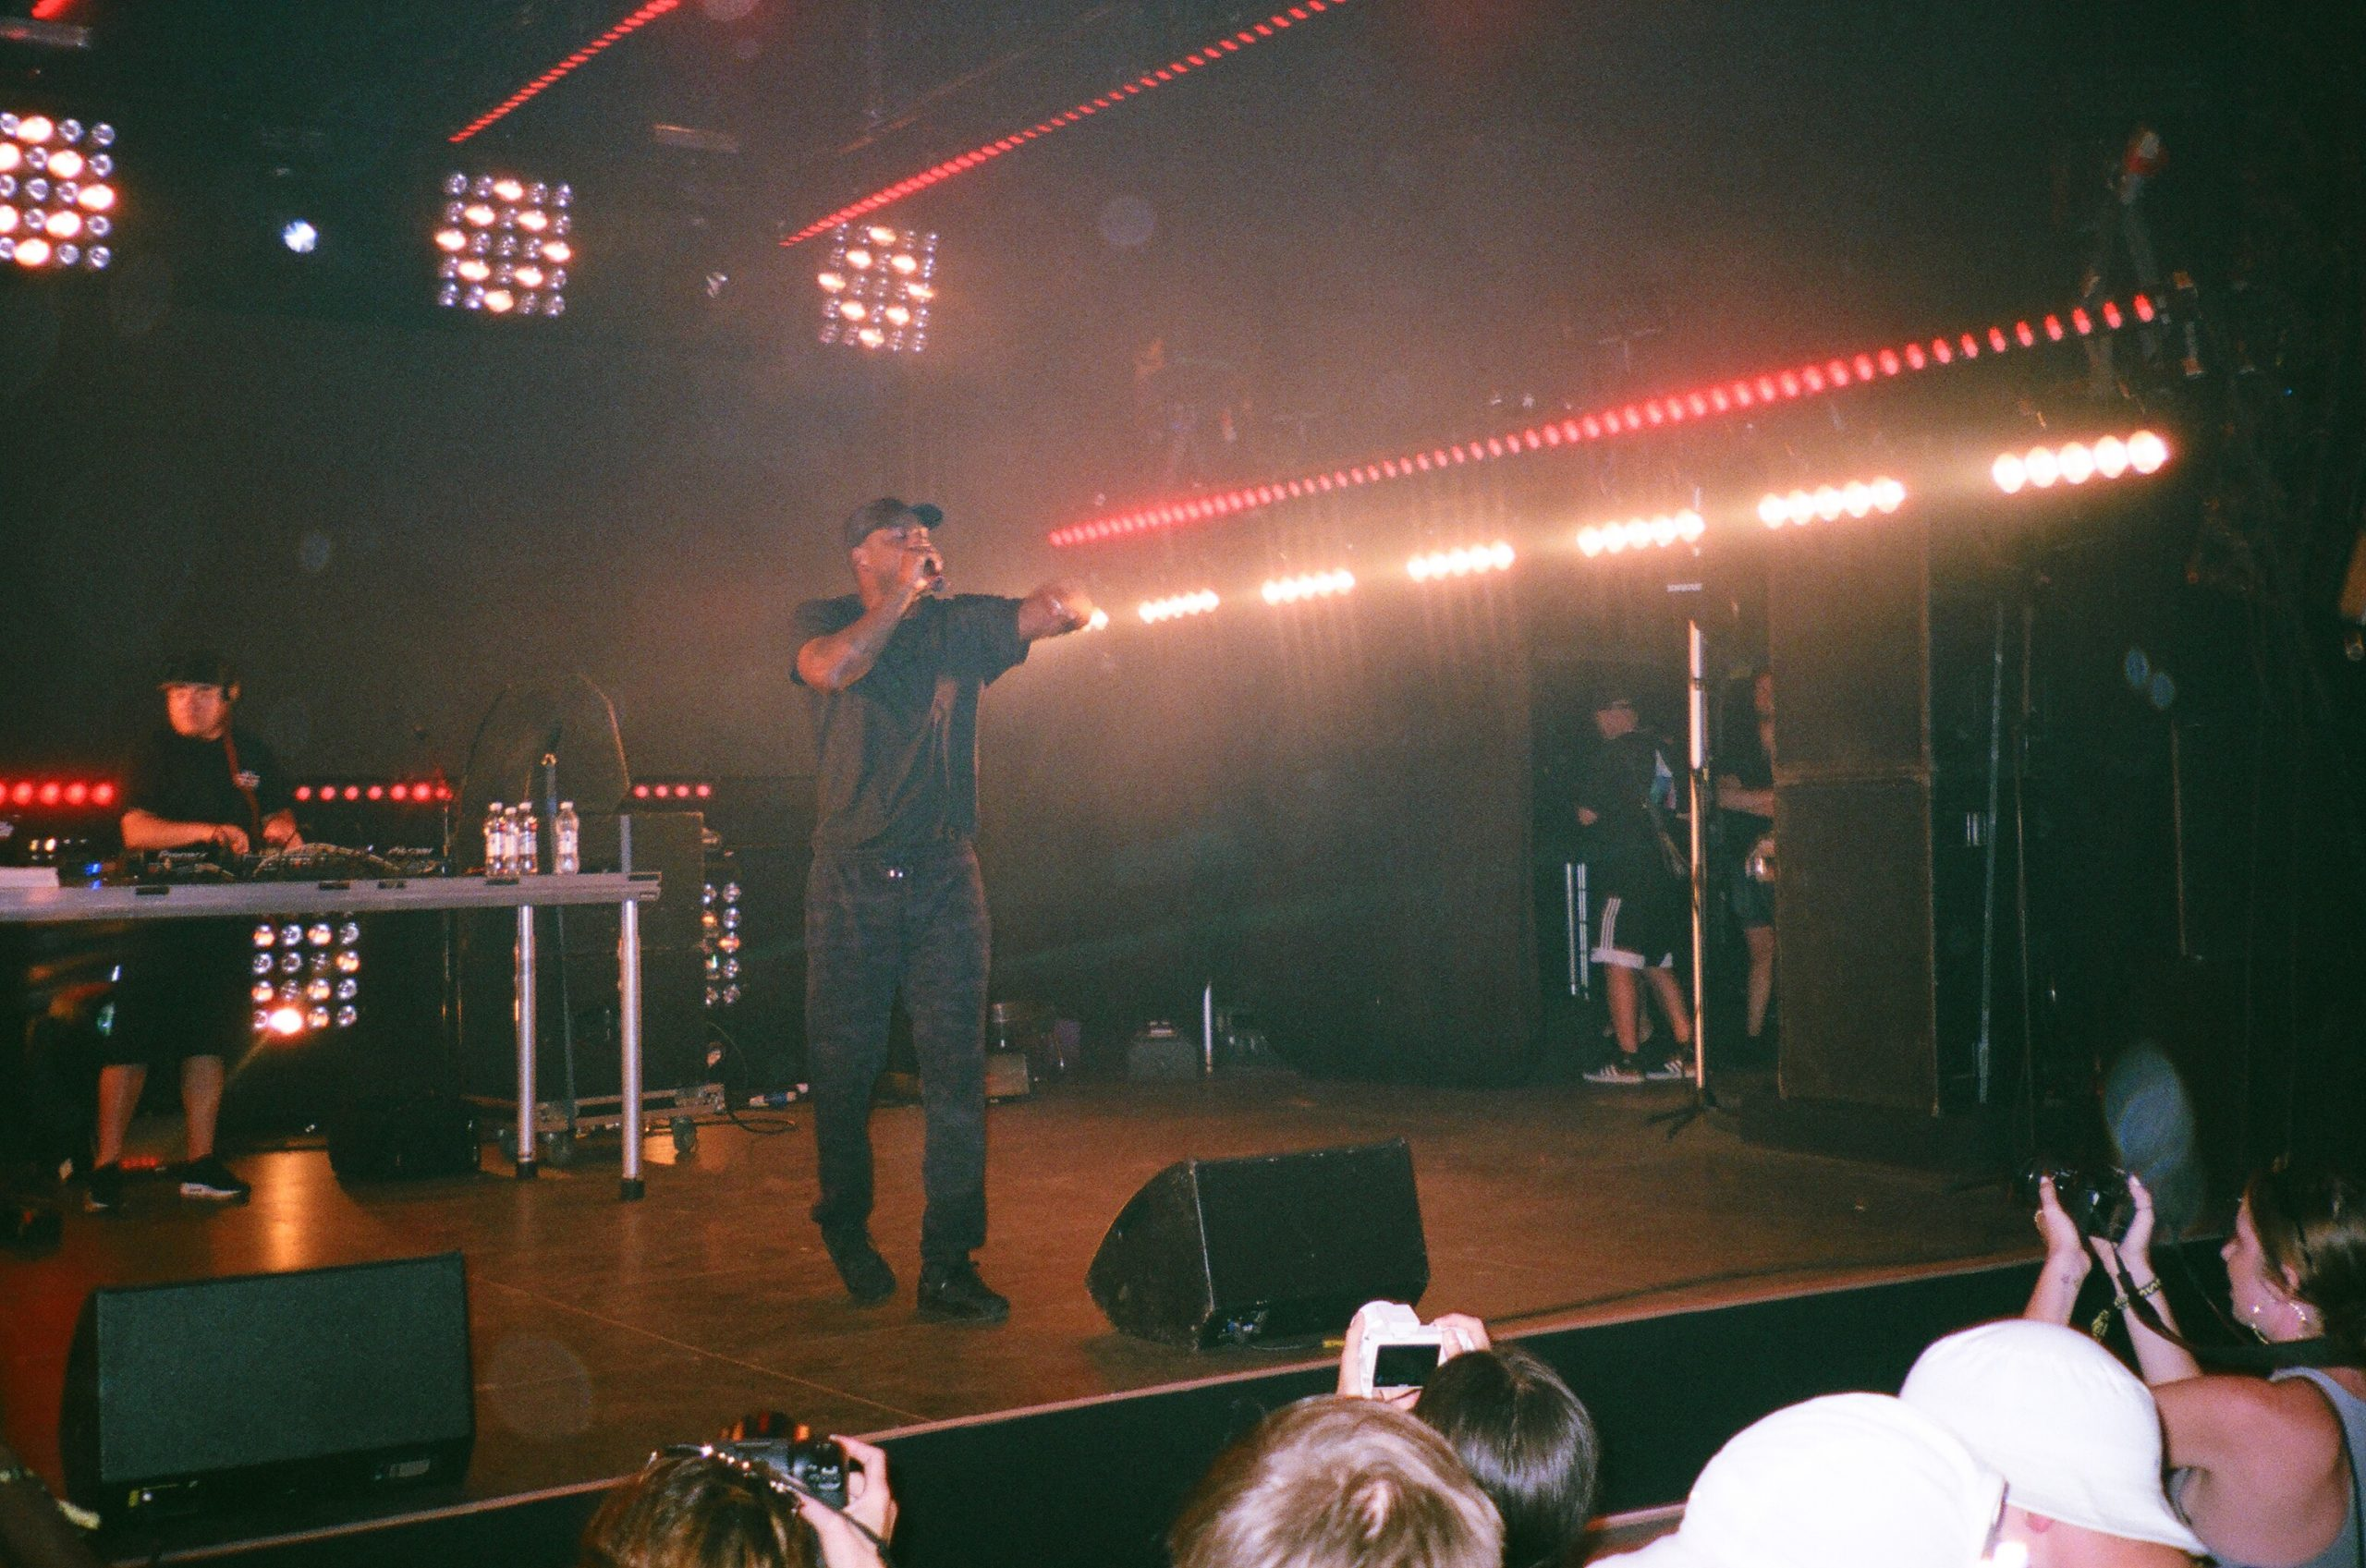 Man standing on stage facing people